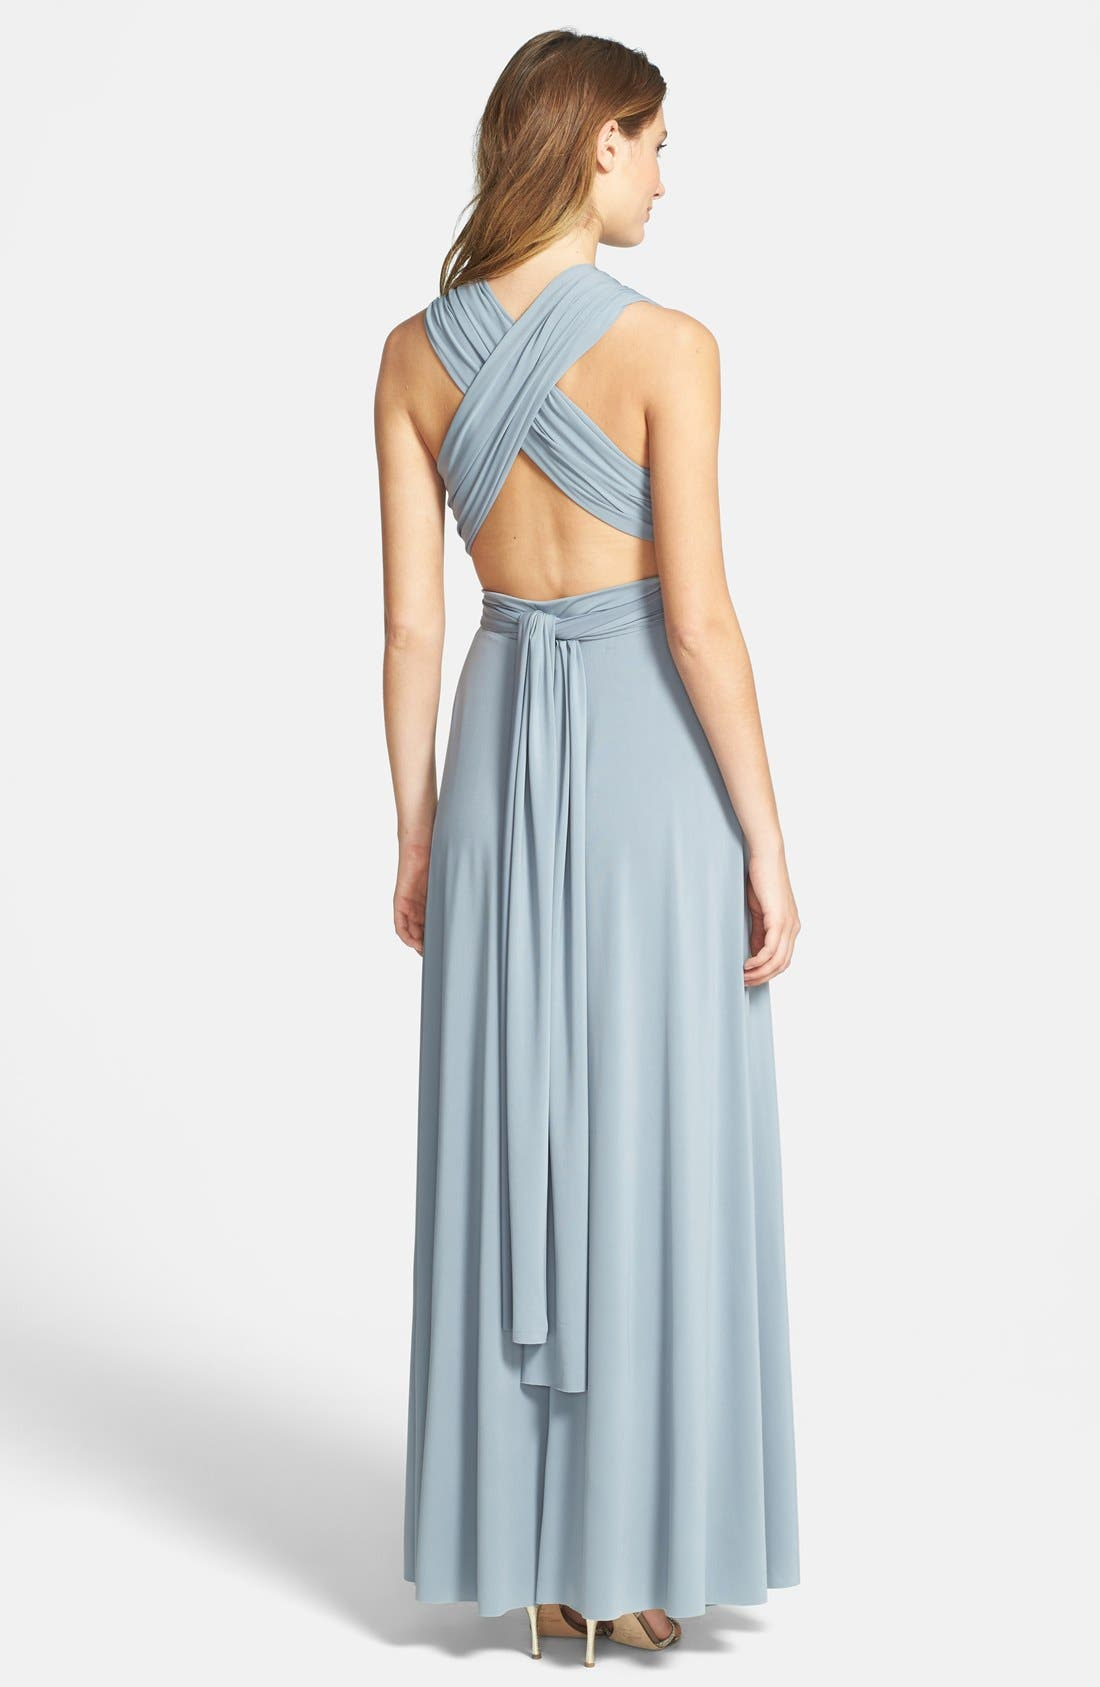 DESSY COLLECTION,                             Convertible Wrap Tie Surplice Jersey Gown,                             Alternate thumbnail 4, color,                             033